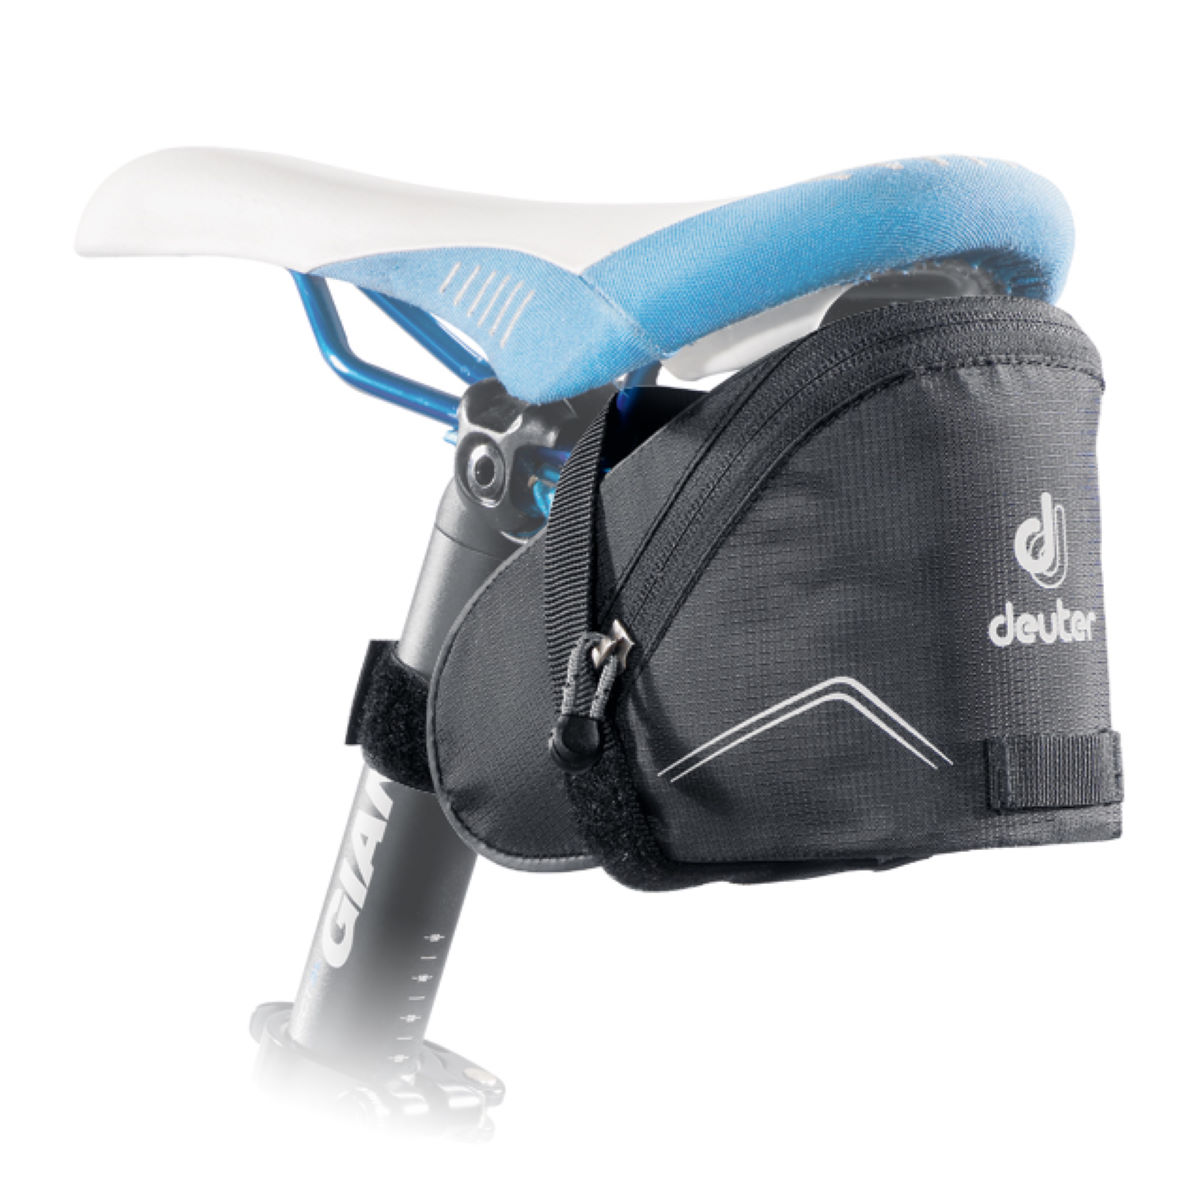 Deuter Bike Bag I - 0.8 Litre (2016)